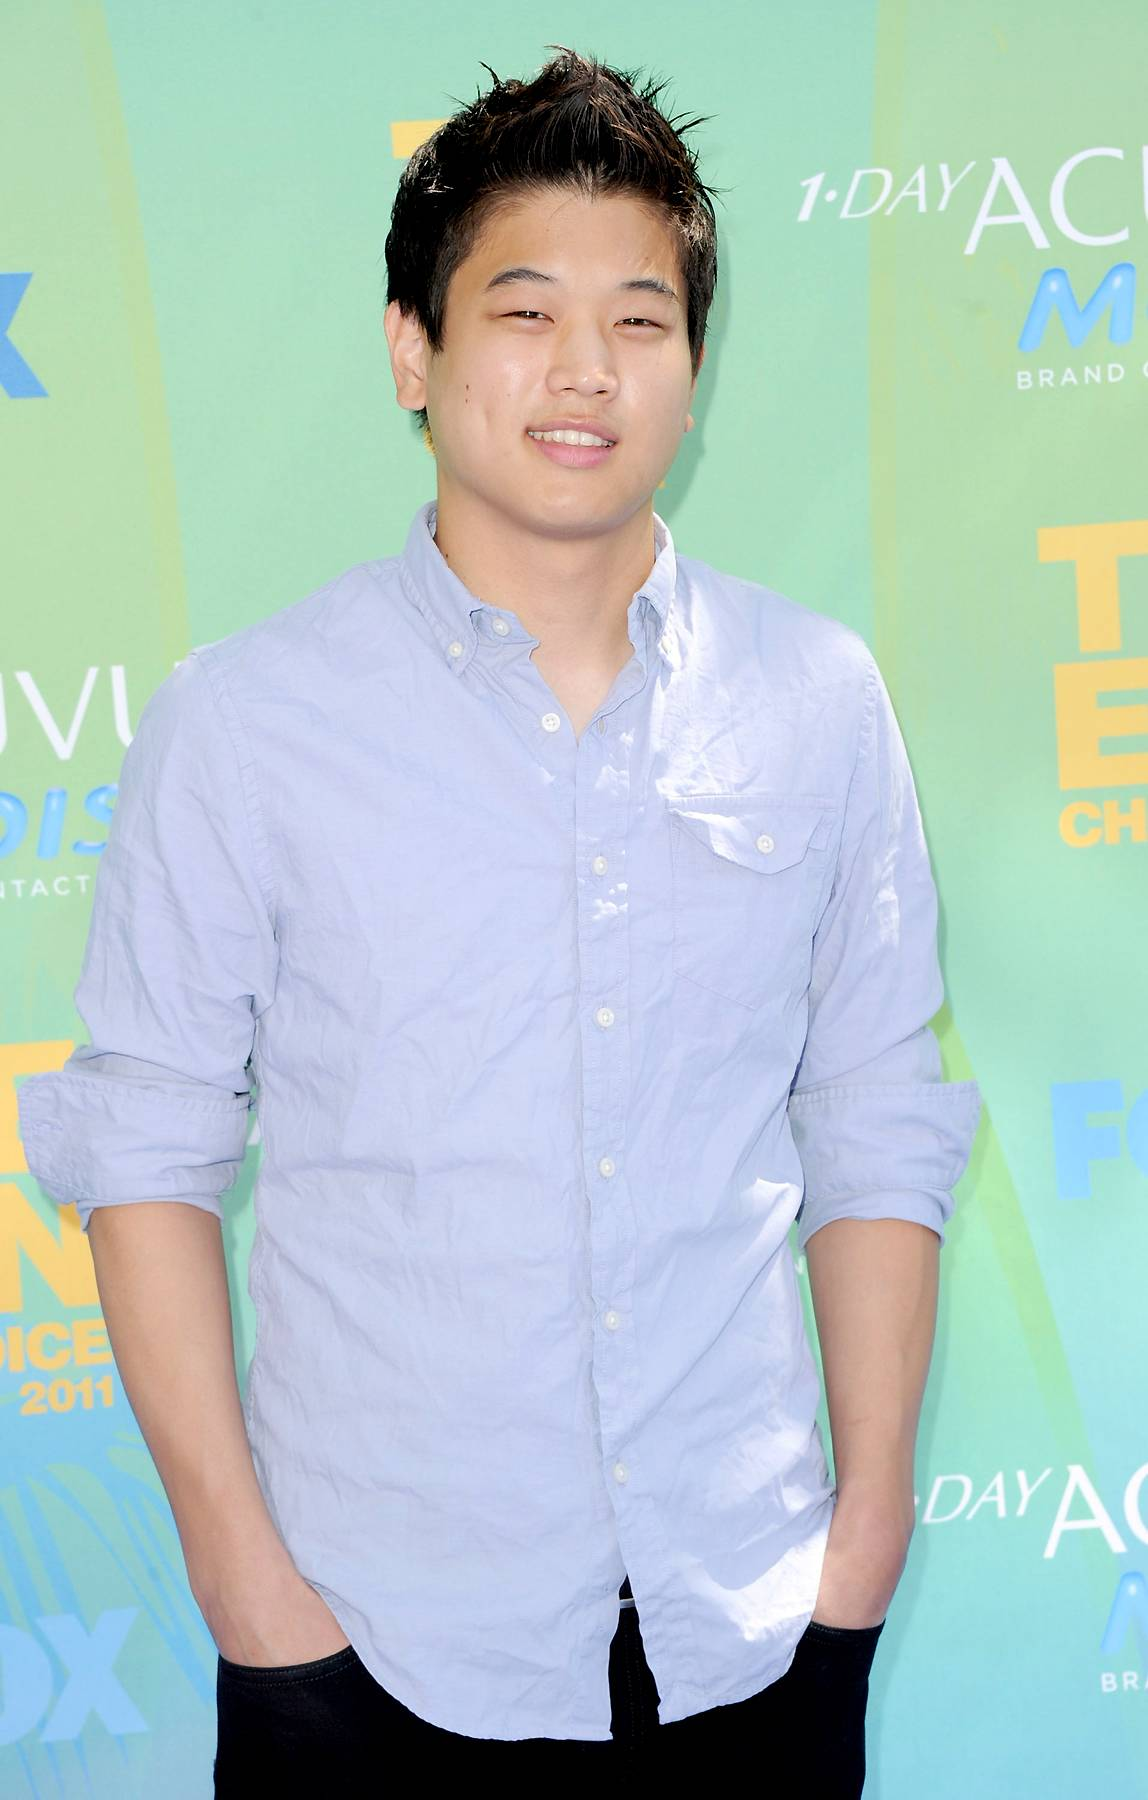 Ki Hong Lee - September 19, 2014 - Actor Ki Hong Lee stopped through along with a few of his castmates to talk about his character in The Maze Runner. Watch a clip now!  (Photo: Jason Merritt/Getty Images)